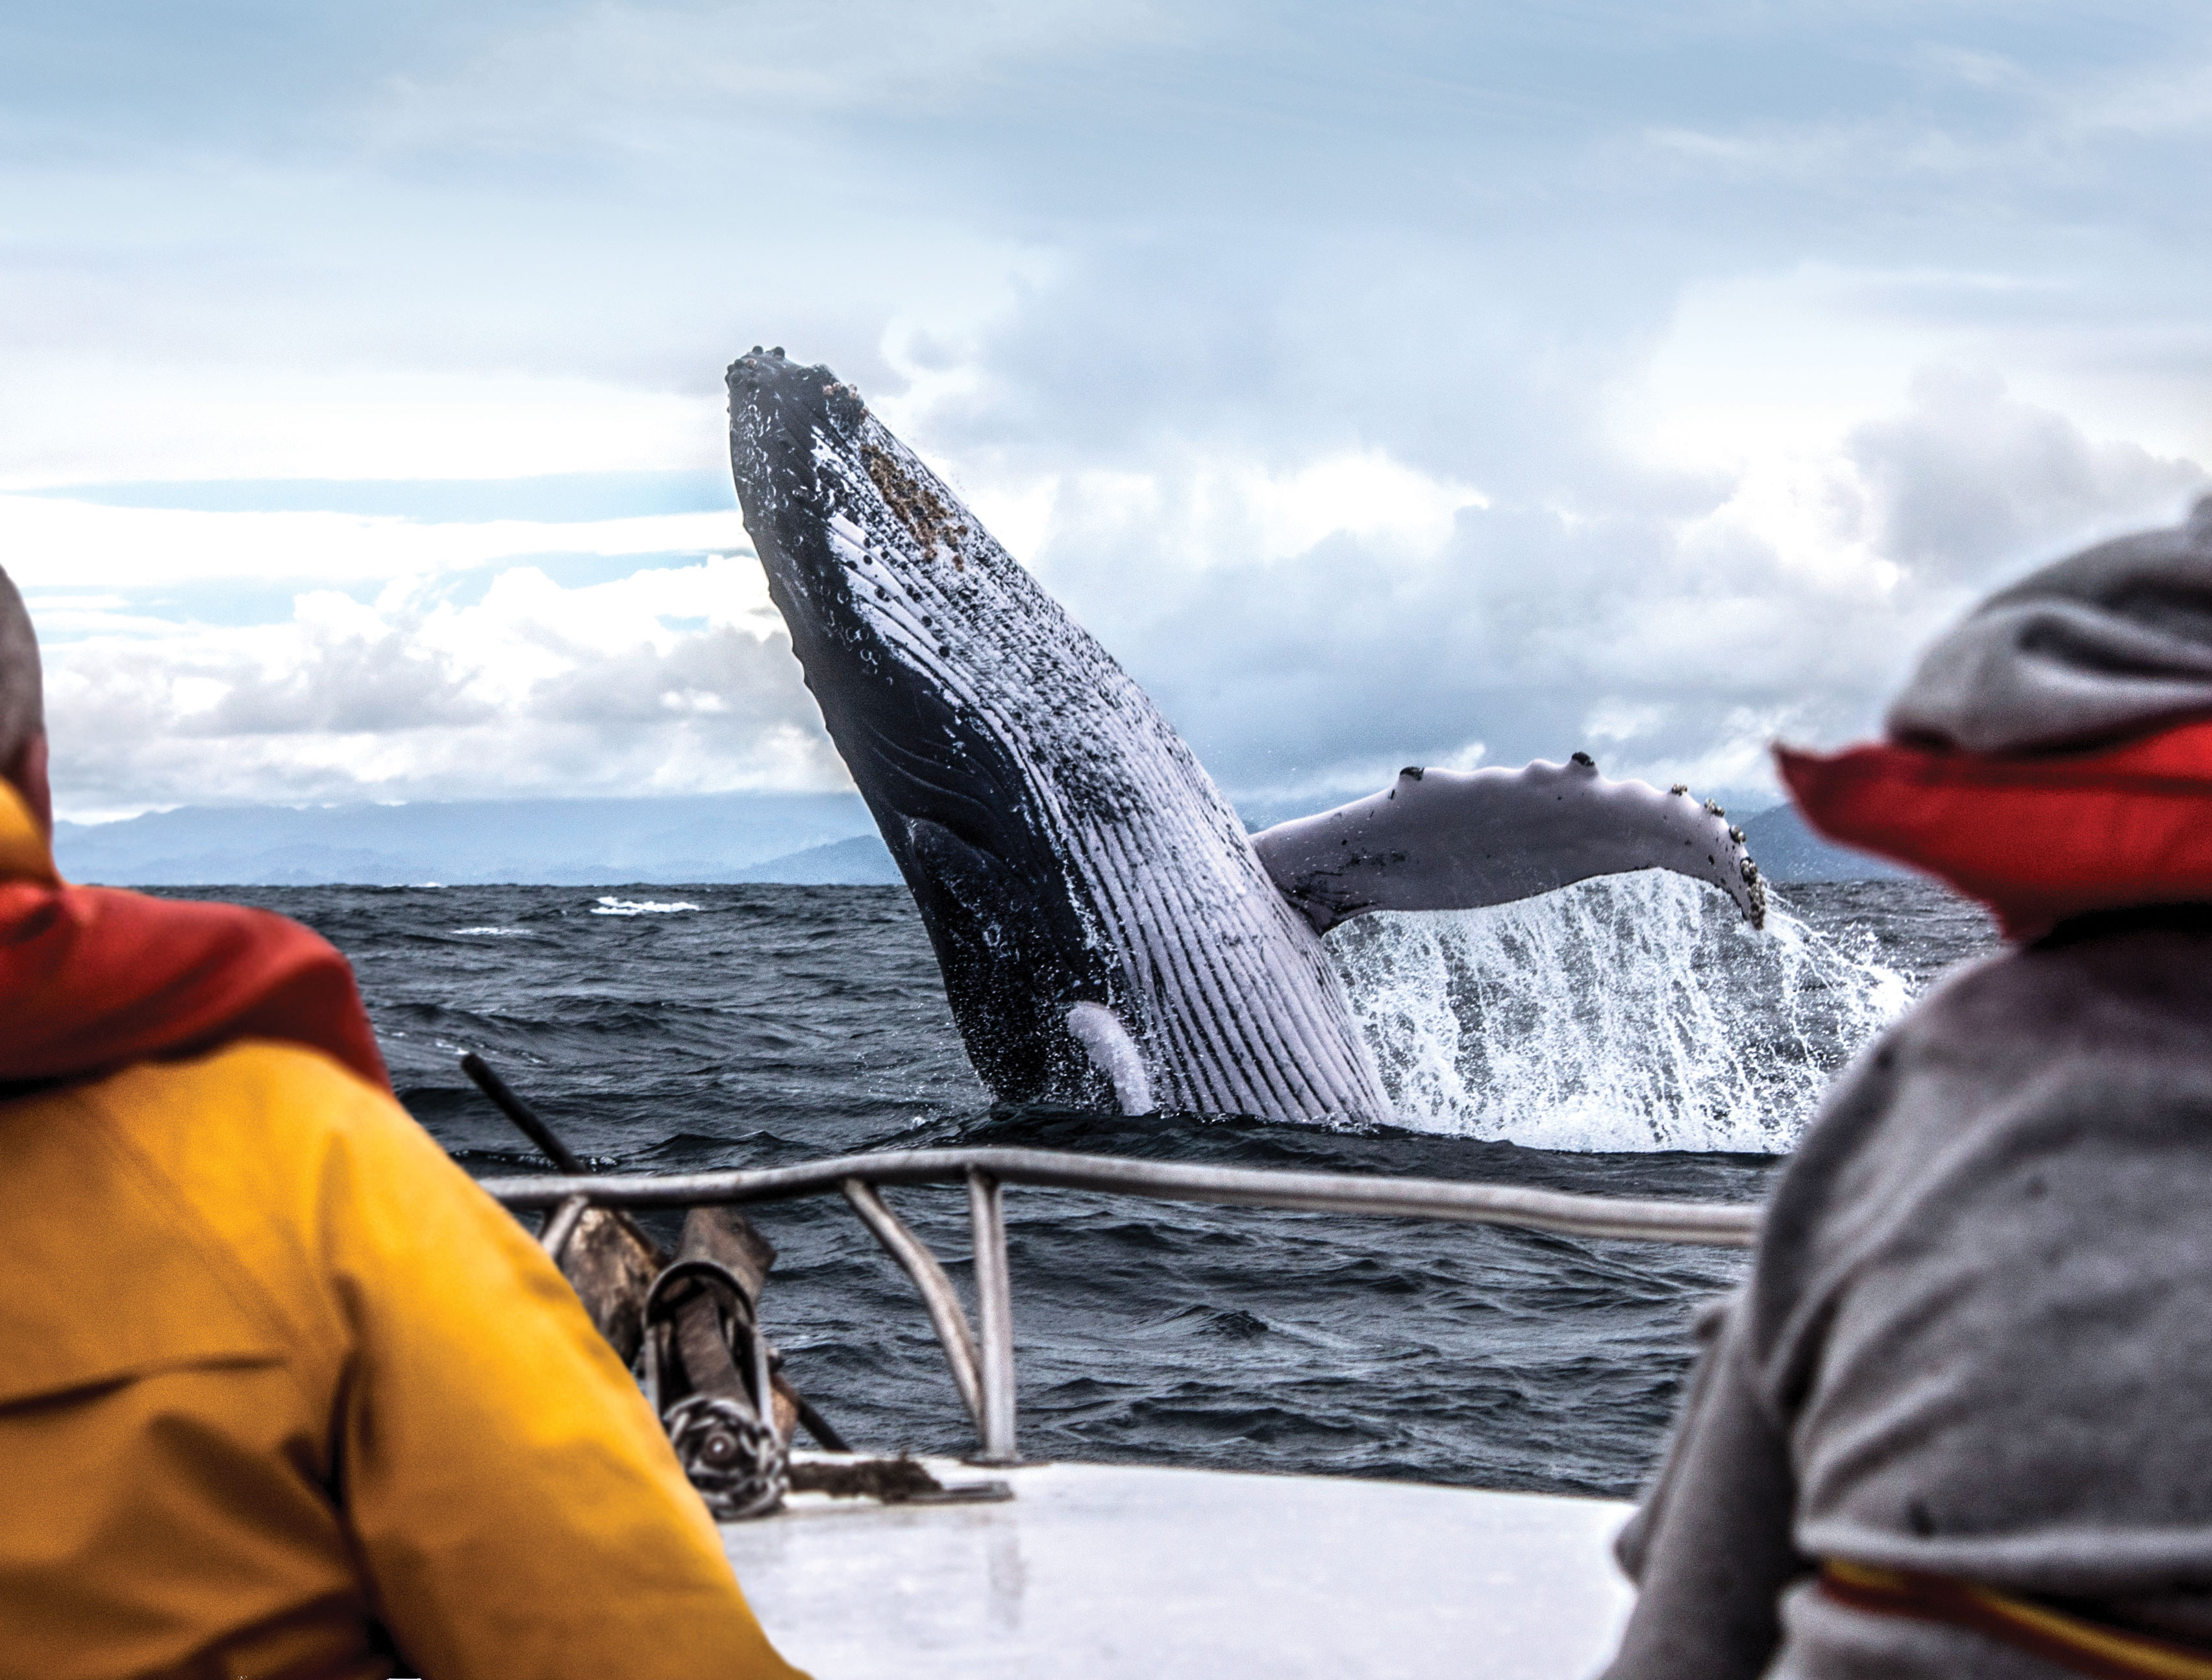 Whale breaches beside an excursion boat.